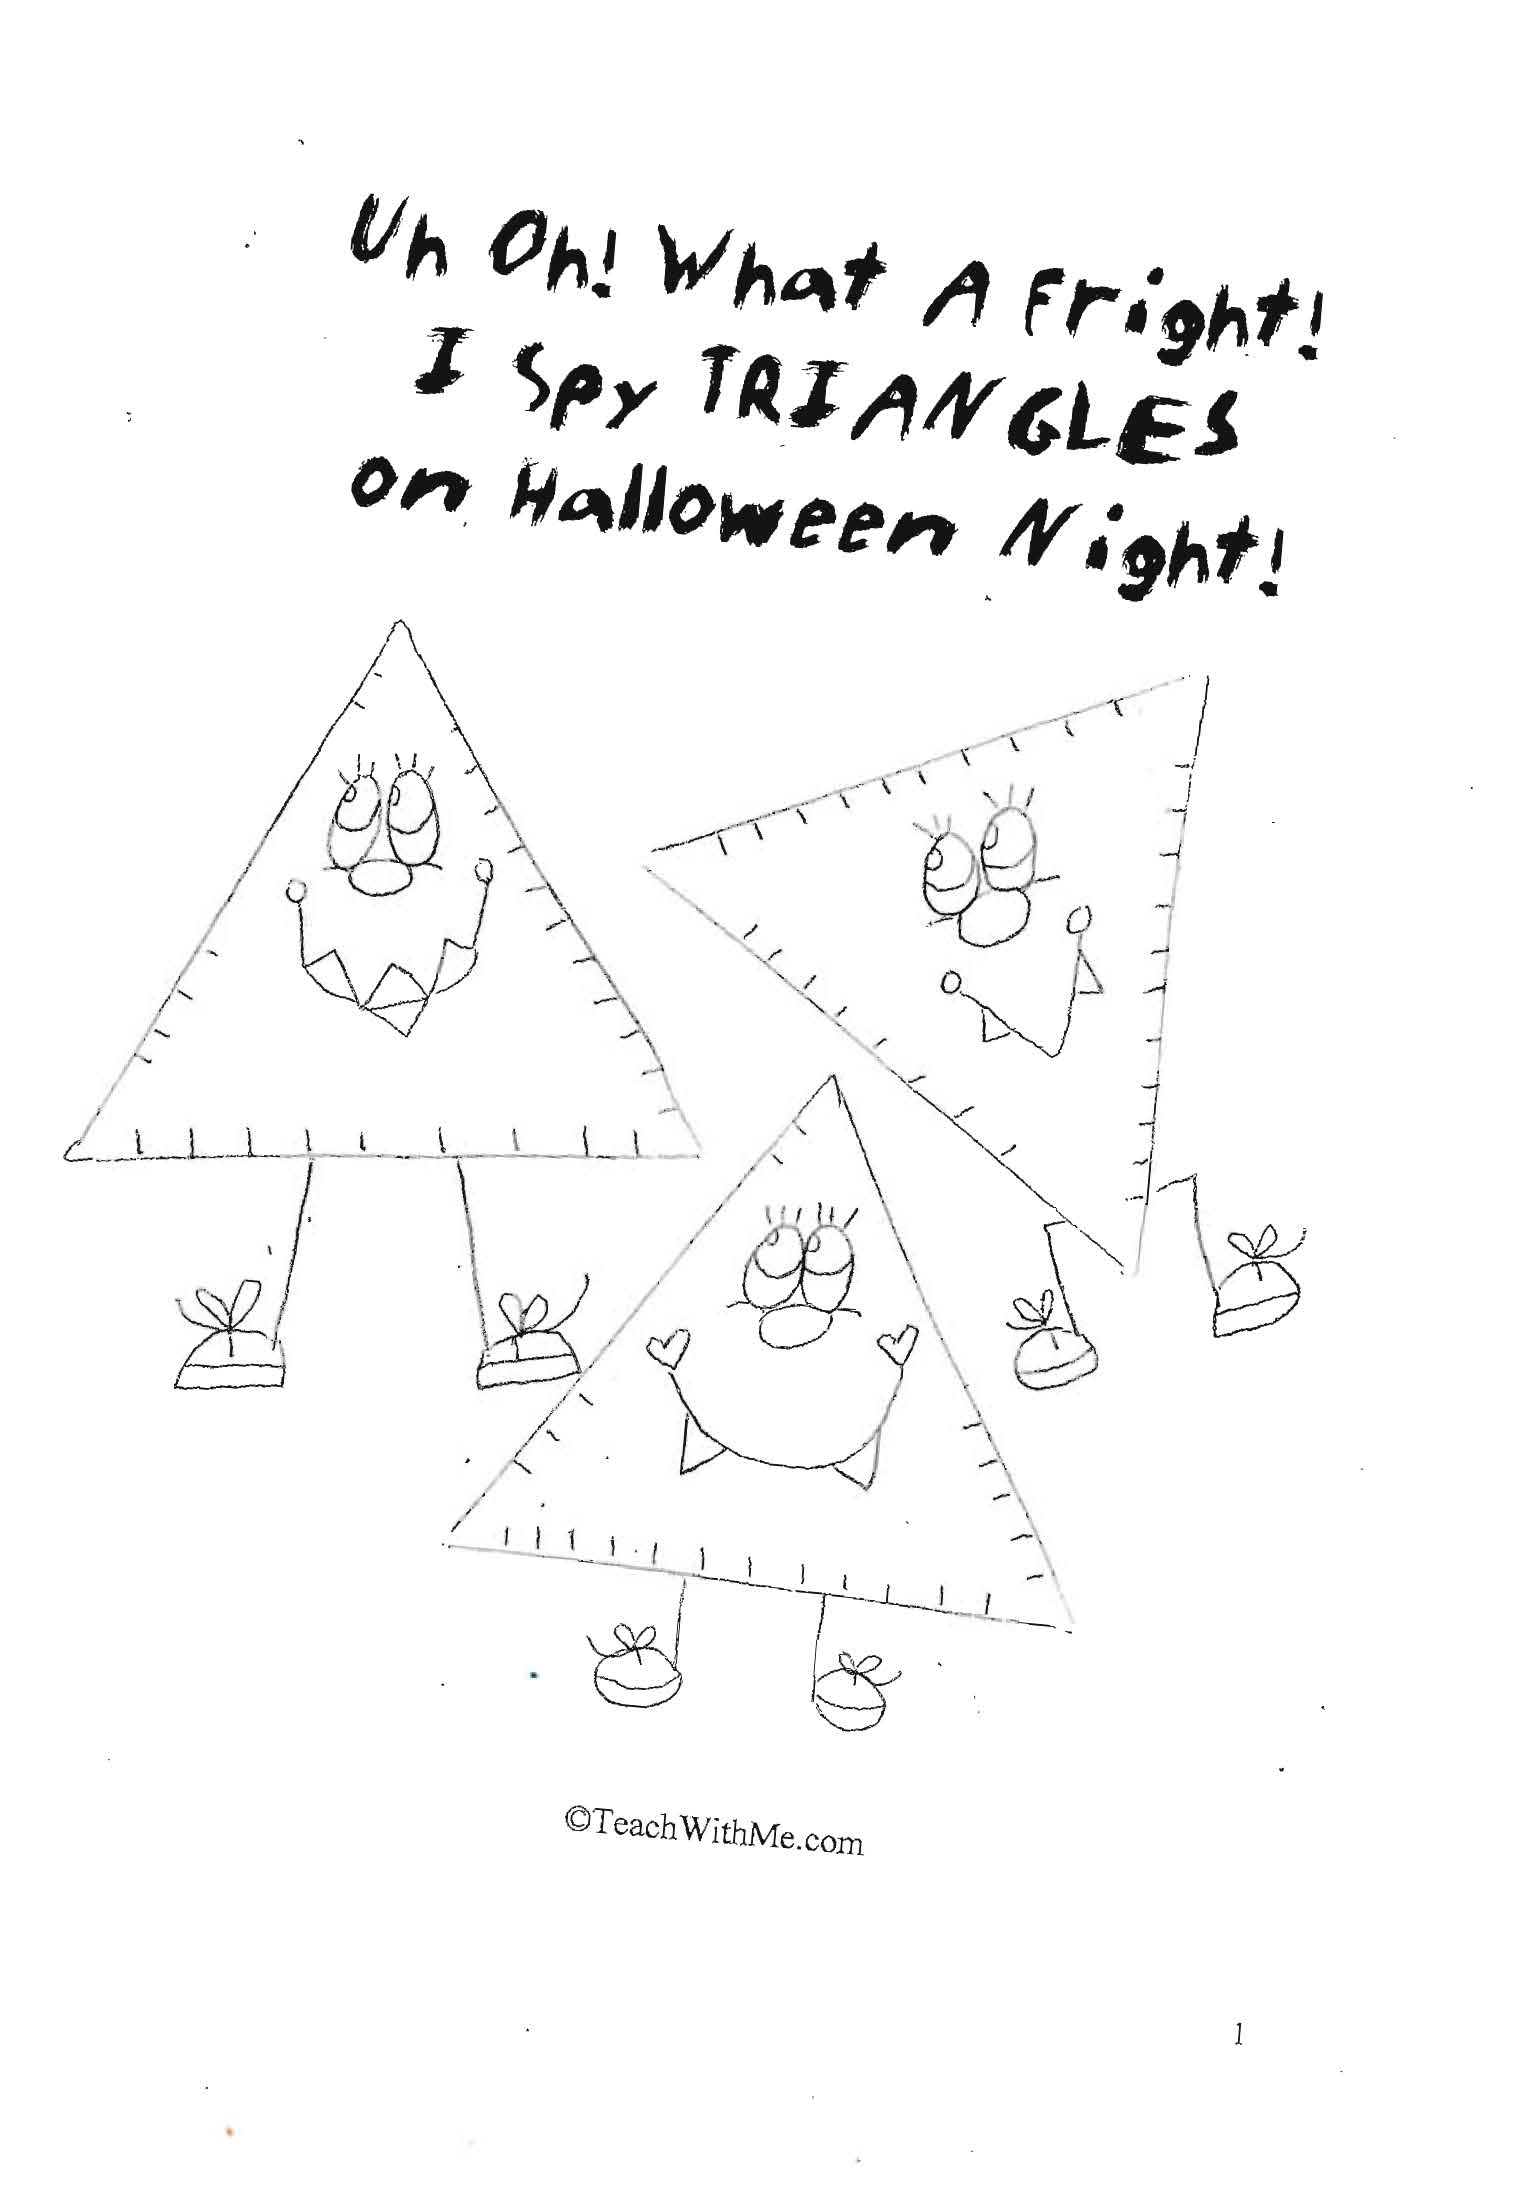 halloween activities, halloween lessons, shape lessons, shape activities, triangles, triangle activities, triangles lessons, daily 5 activities, daily 5 lessons, common core lessons for kindergarten common core lesson for first grade, rhyming booklet, easy reader booklets, rhyming activities, rhyming lessons, halloween booklet,